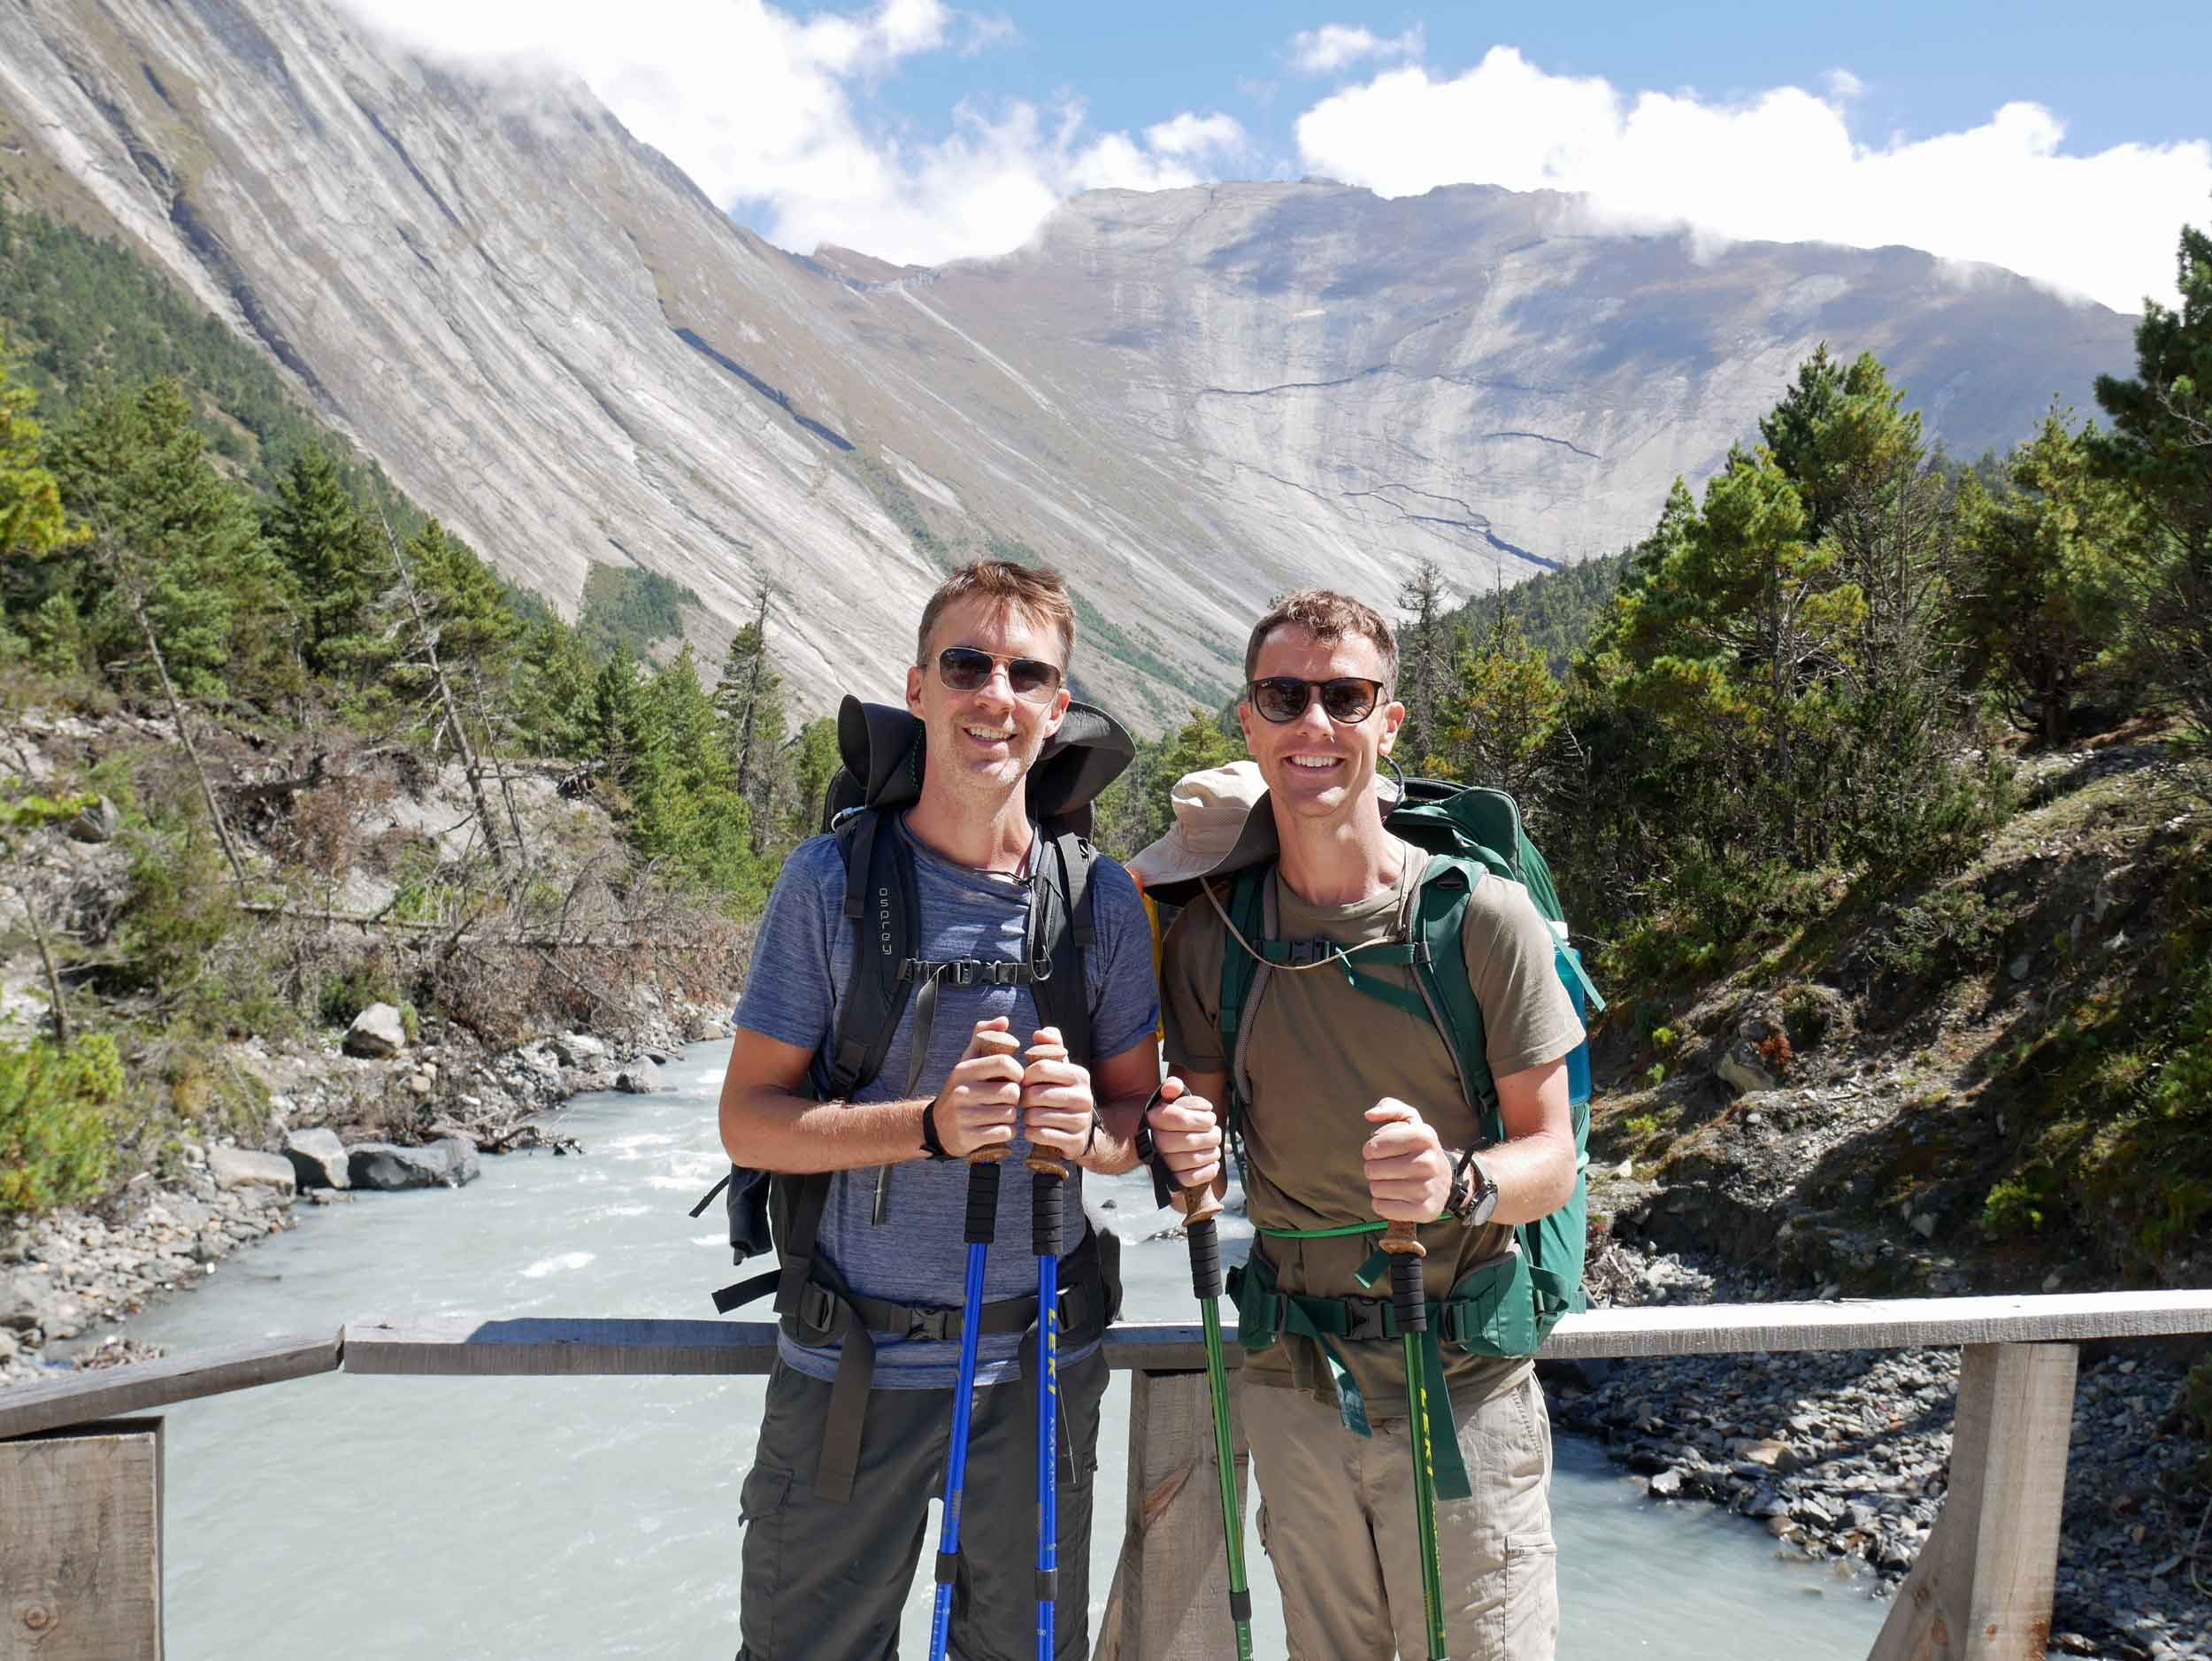 We were fitted out for this seven-day sojourn, hiking poles and all!